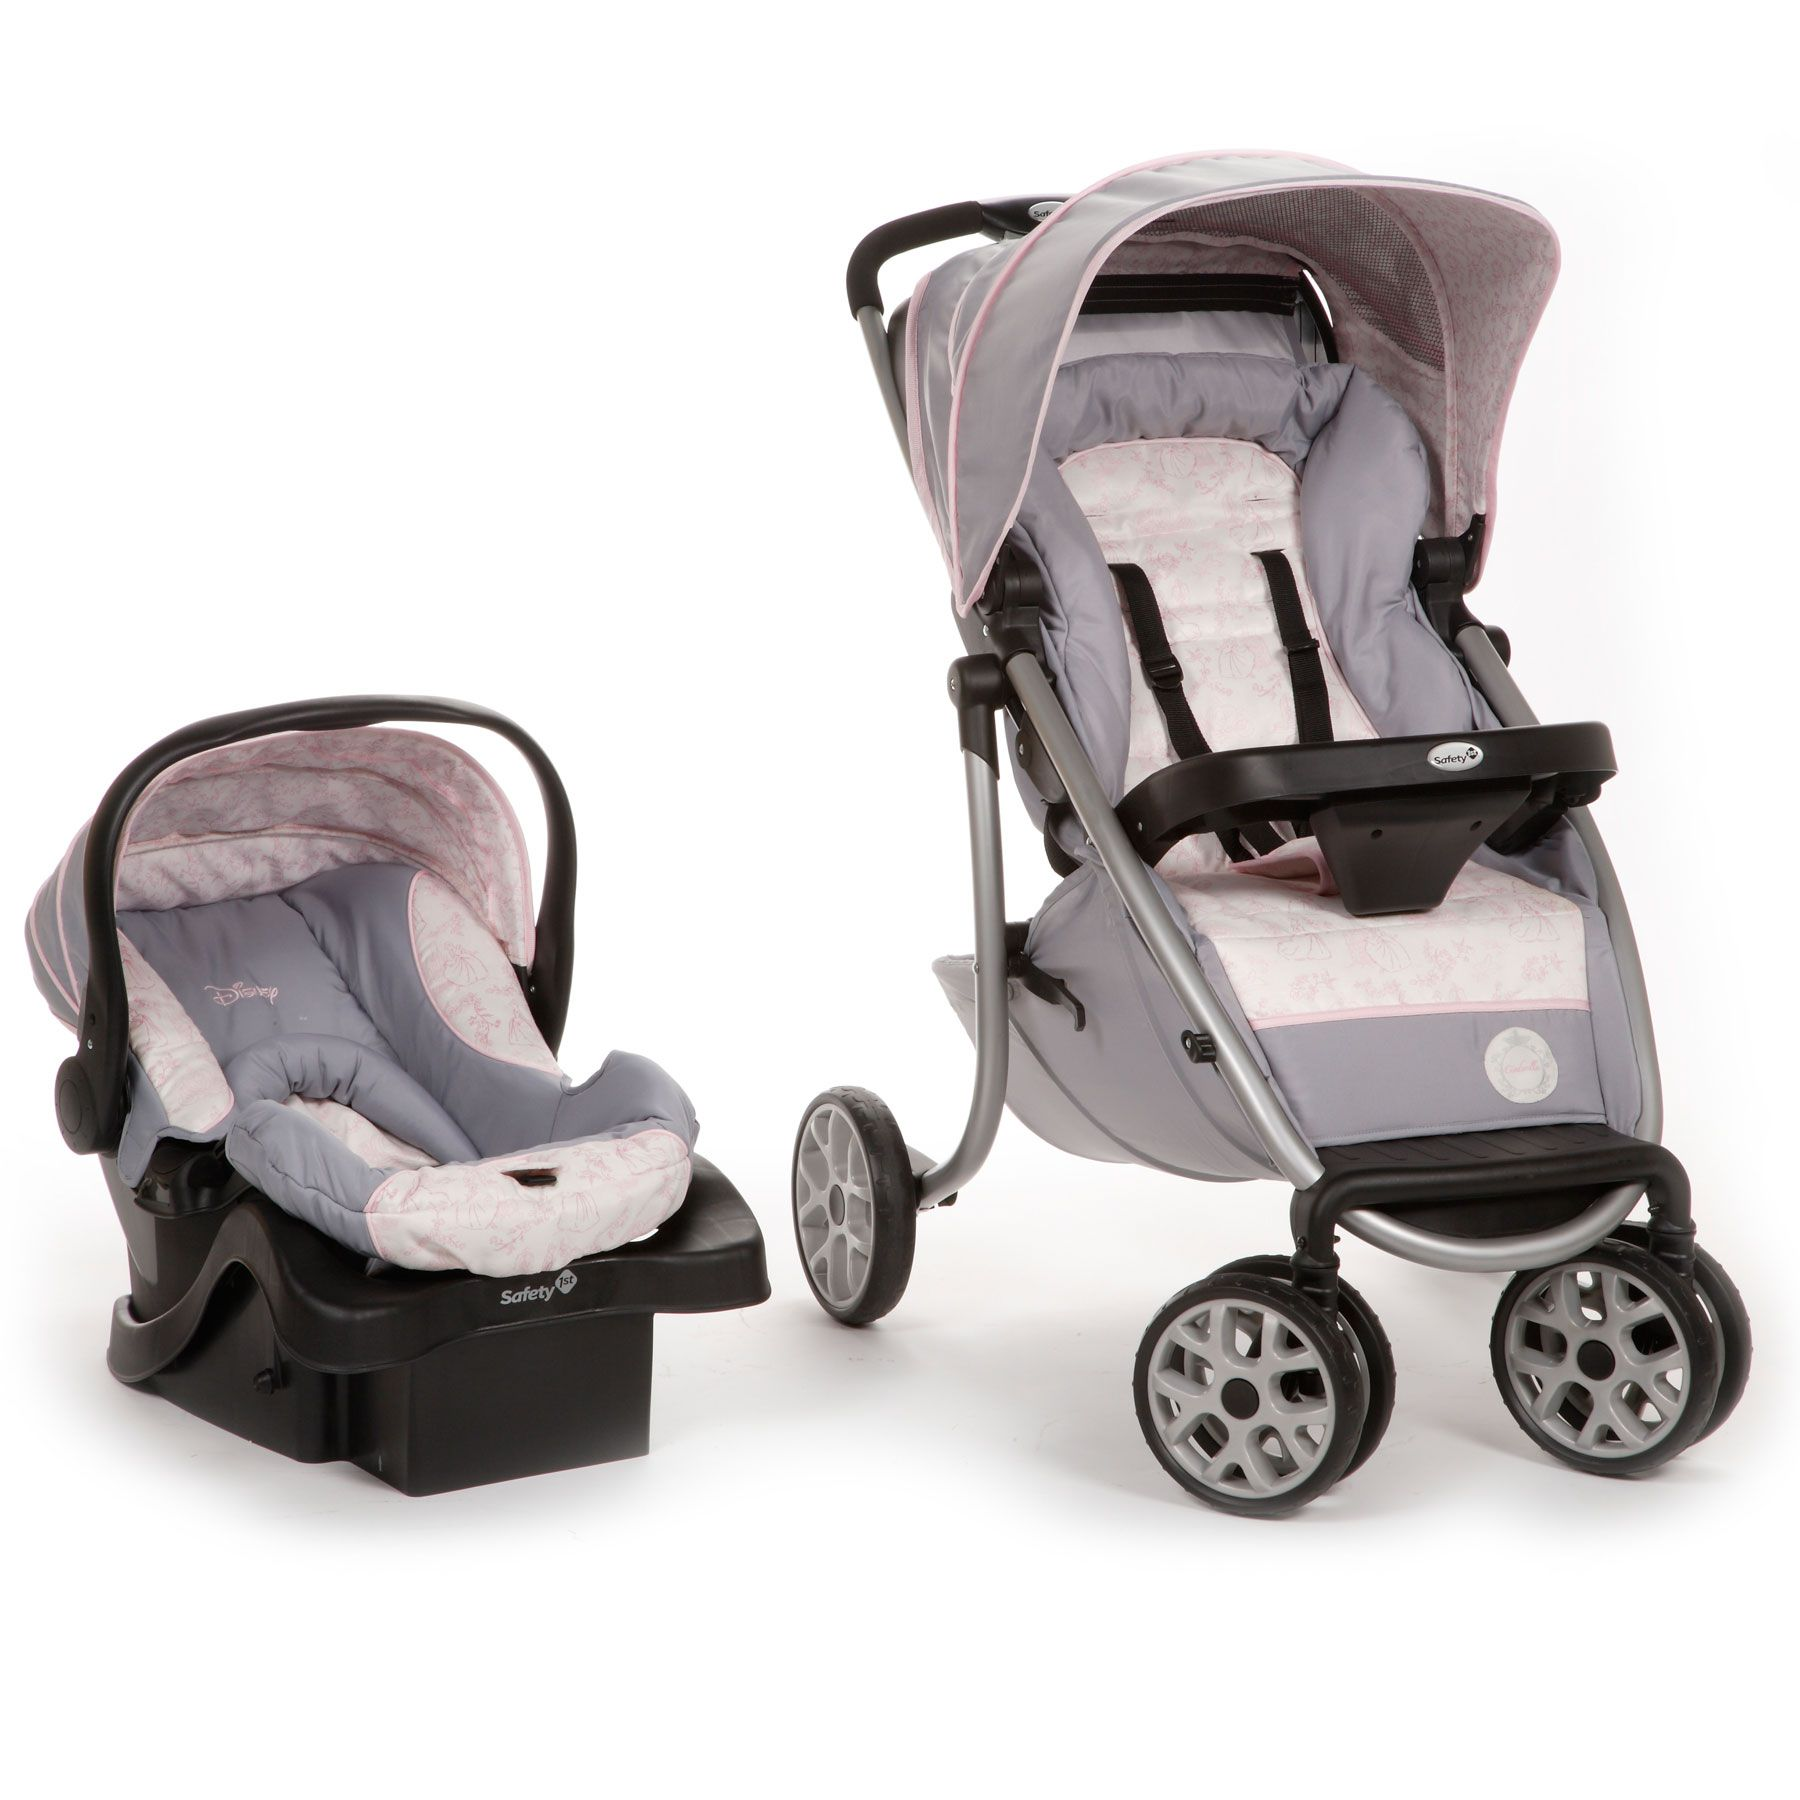 Princess Silhouette Royal Ride Travel System from Safety